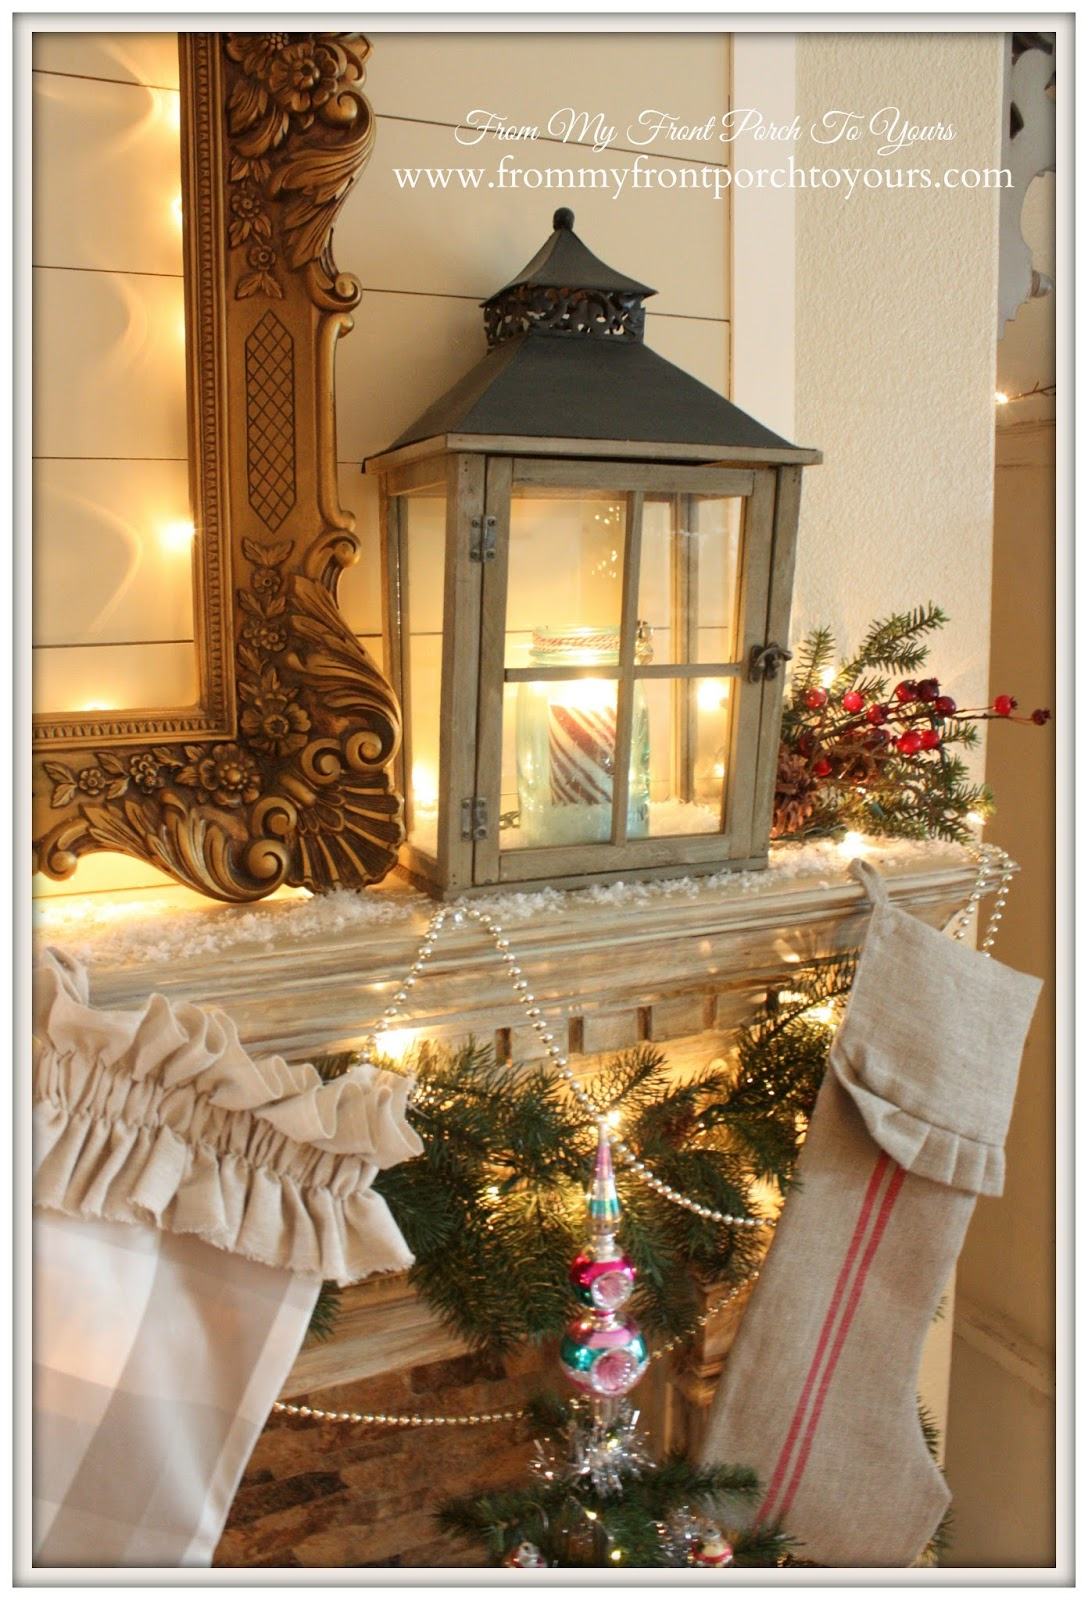 French Farmhouse Vintage Christmas Mantel 2014-Vintage- From My Front Porch To Yours